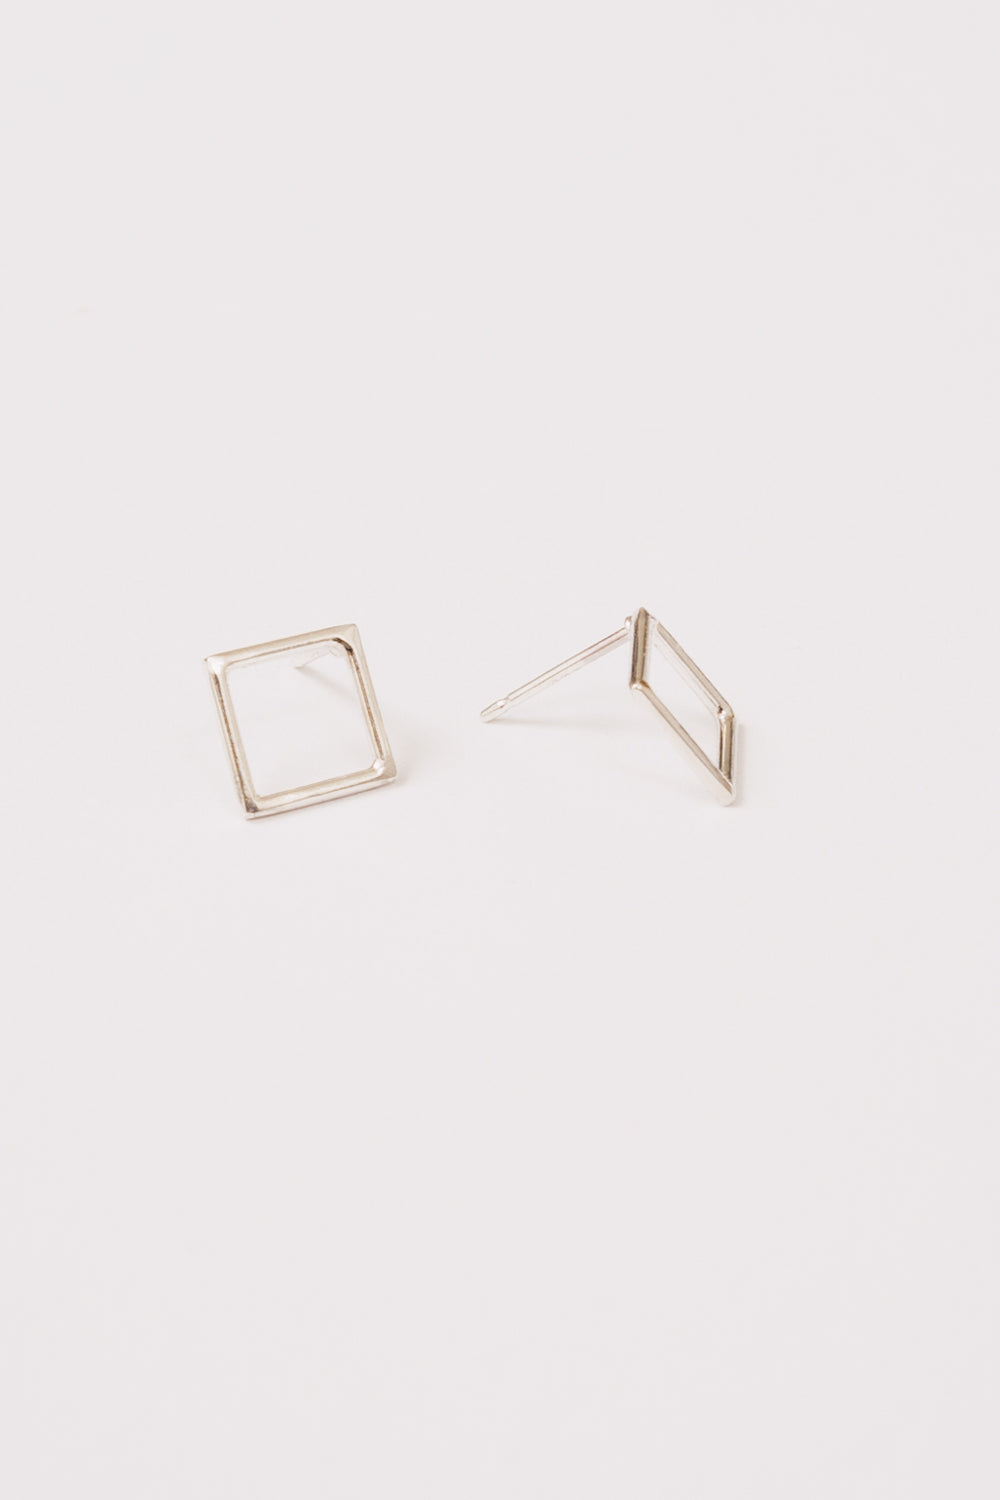 Roan Earrings | Sterling Silver | Janna Conner